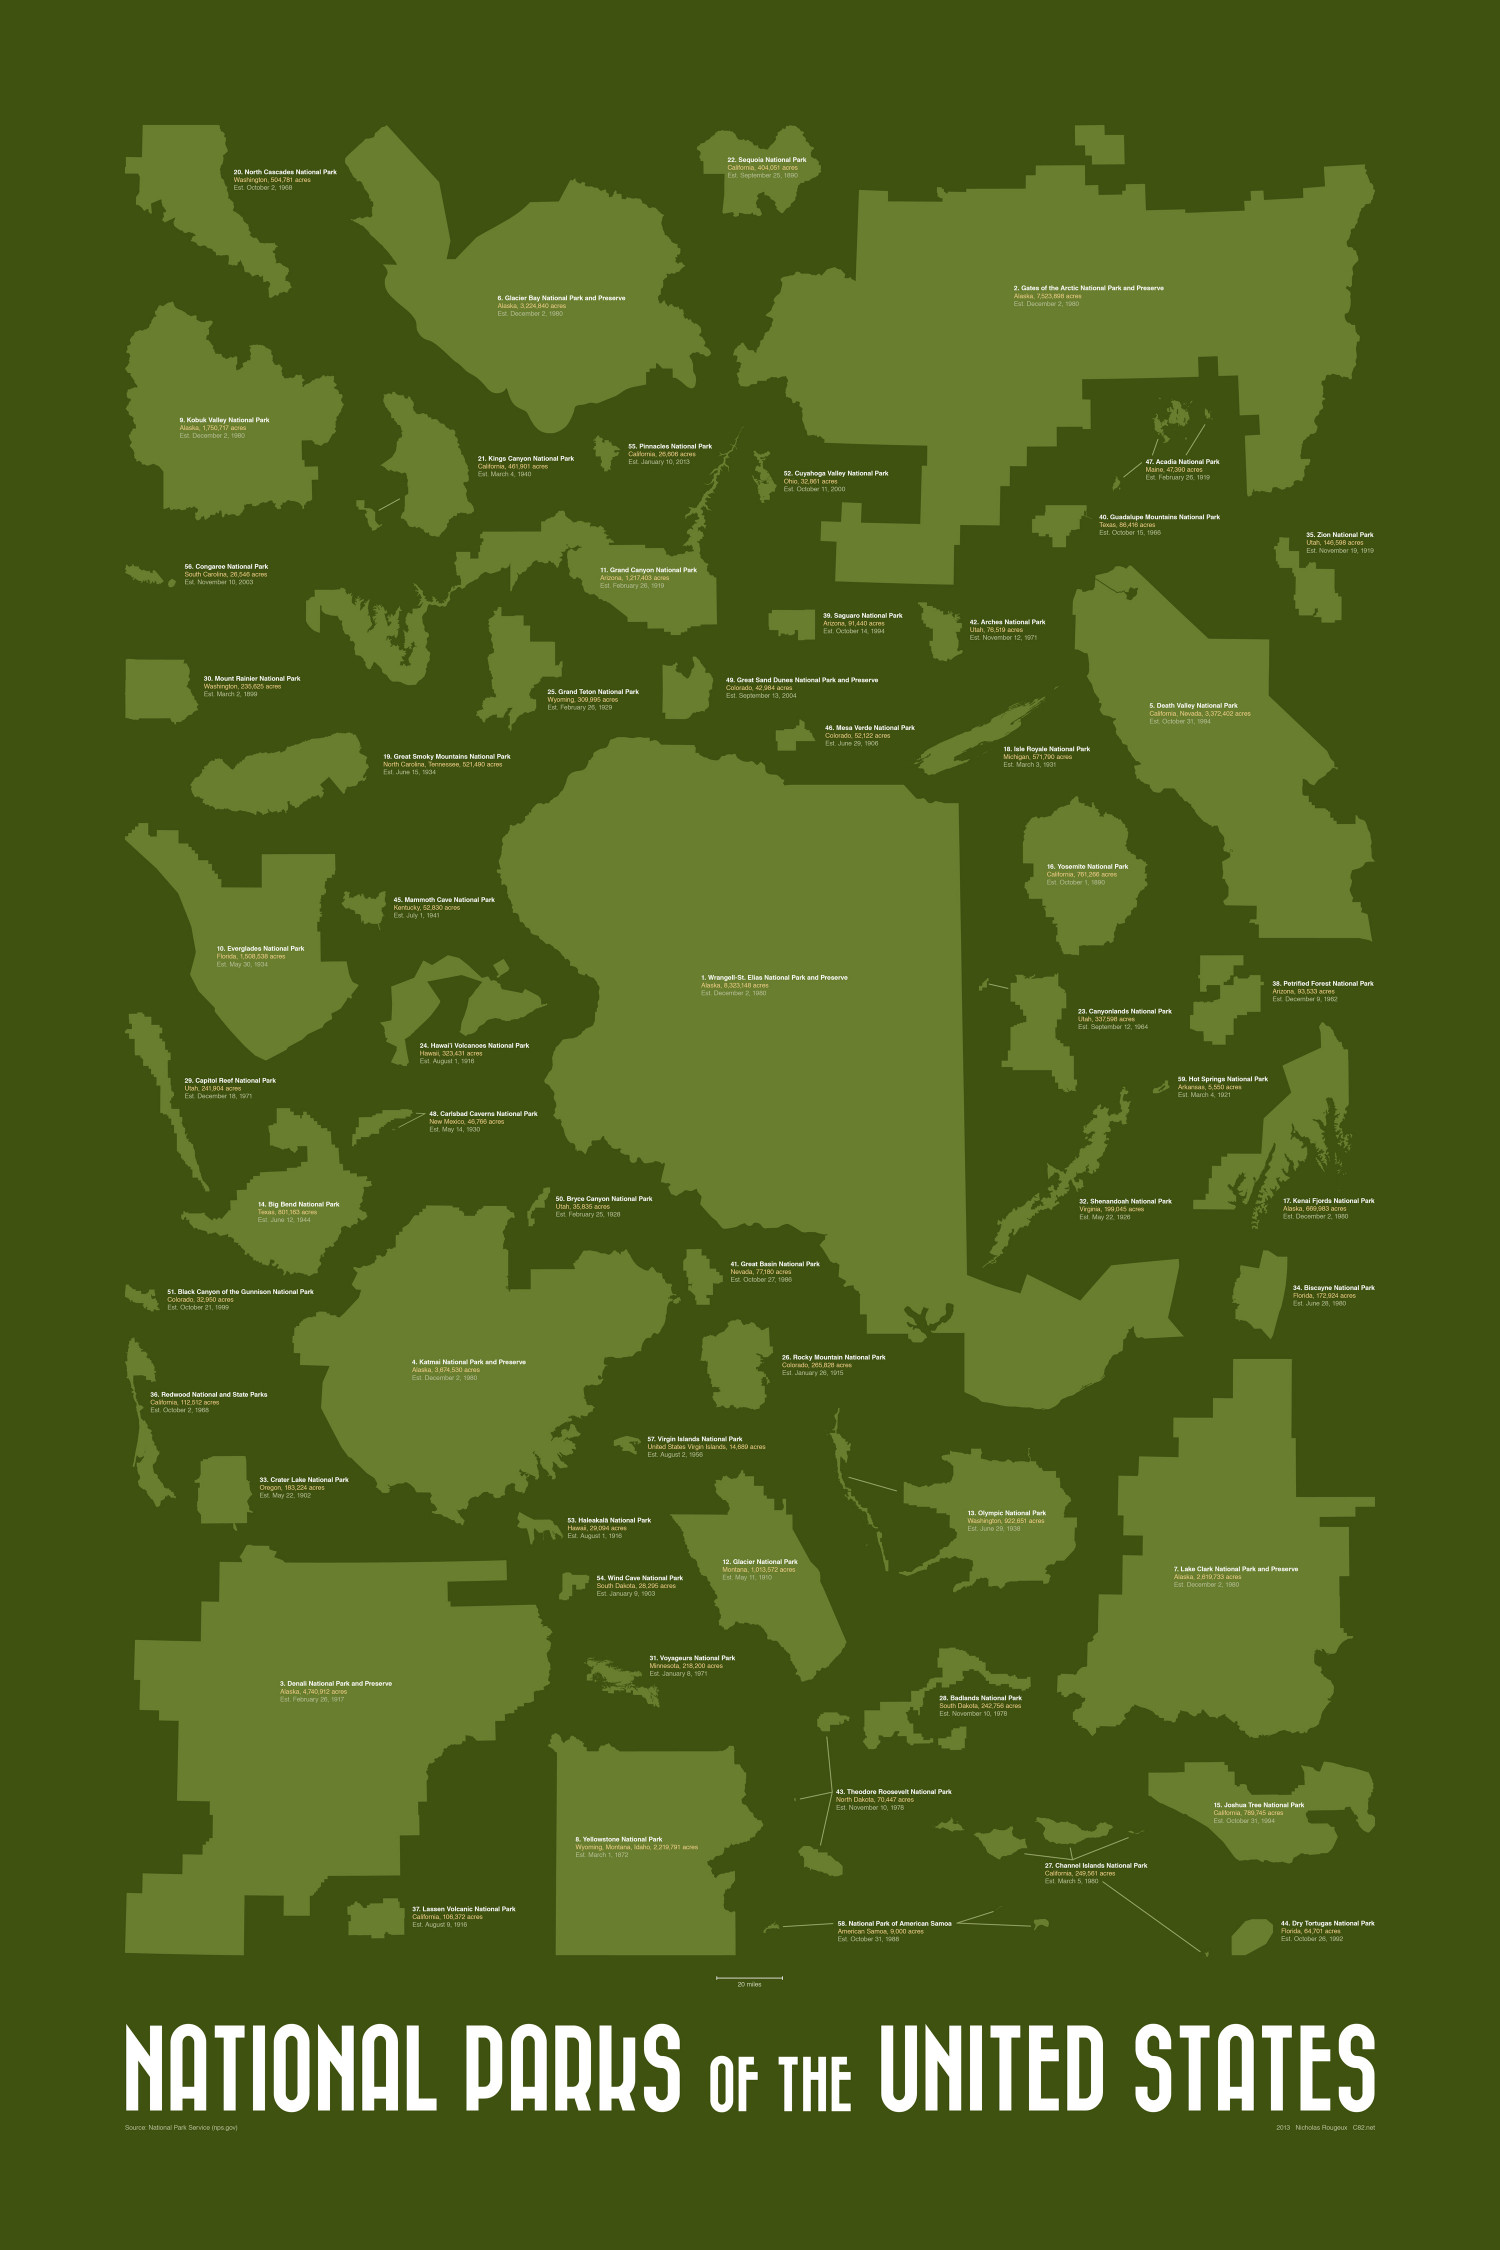 National Parks of the United States Infographic